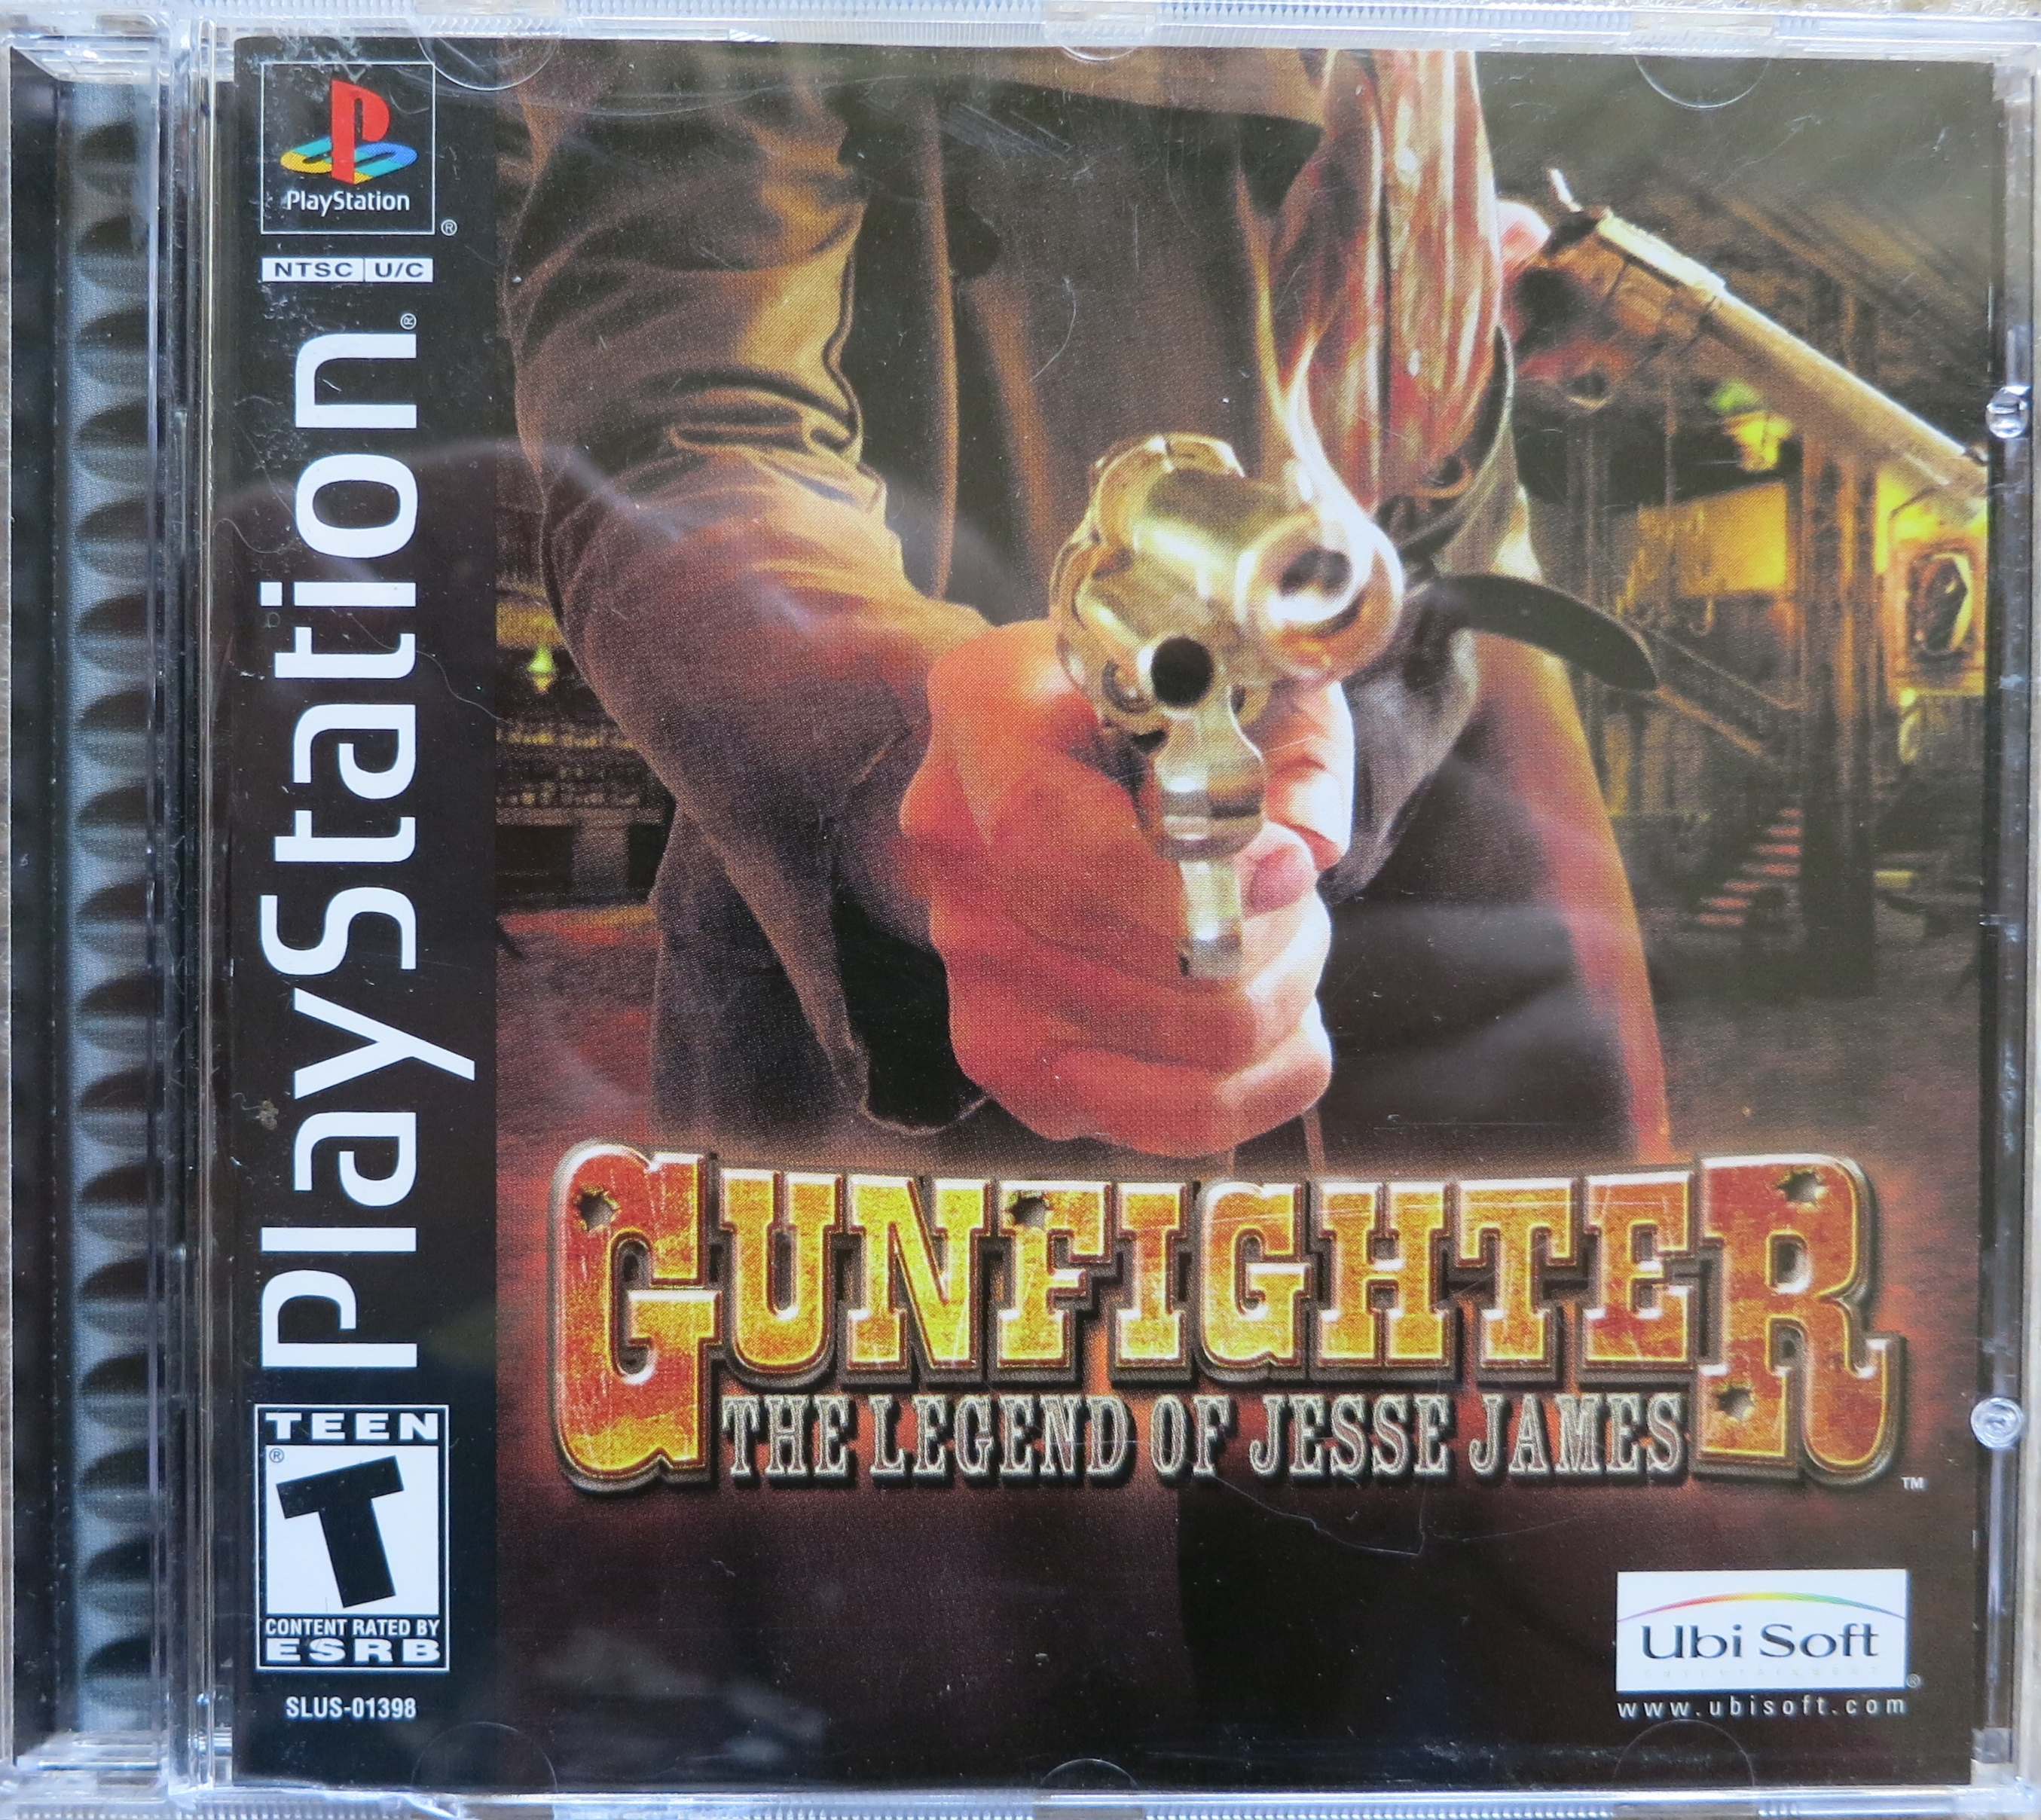 Gunfighter The Legend of Jesse James Cover